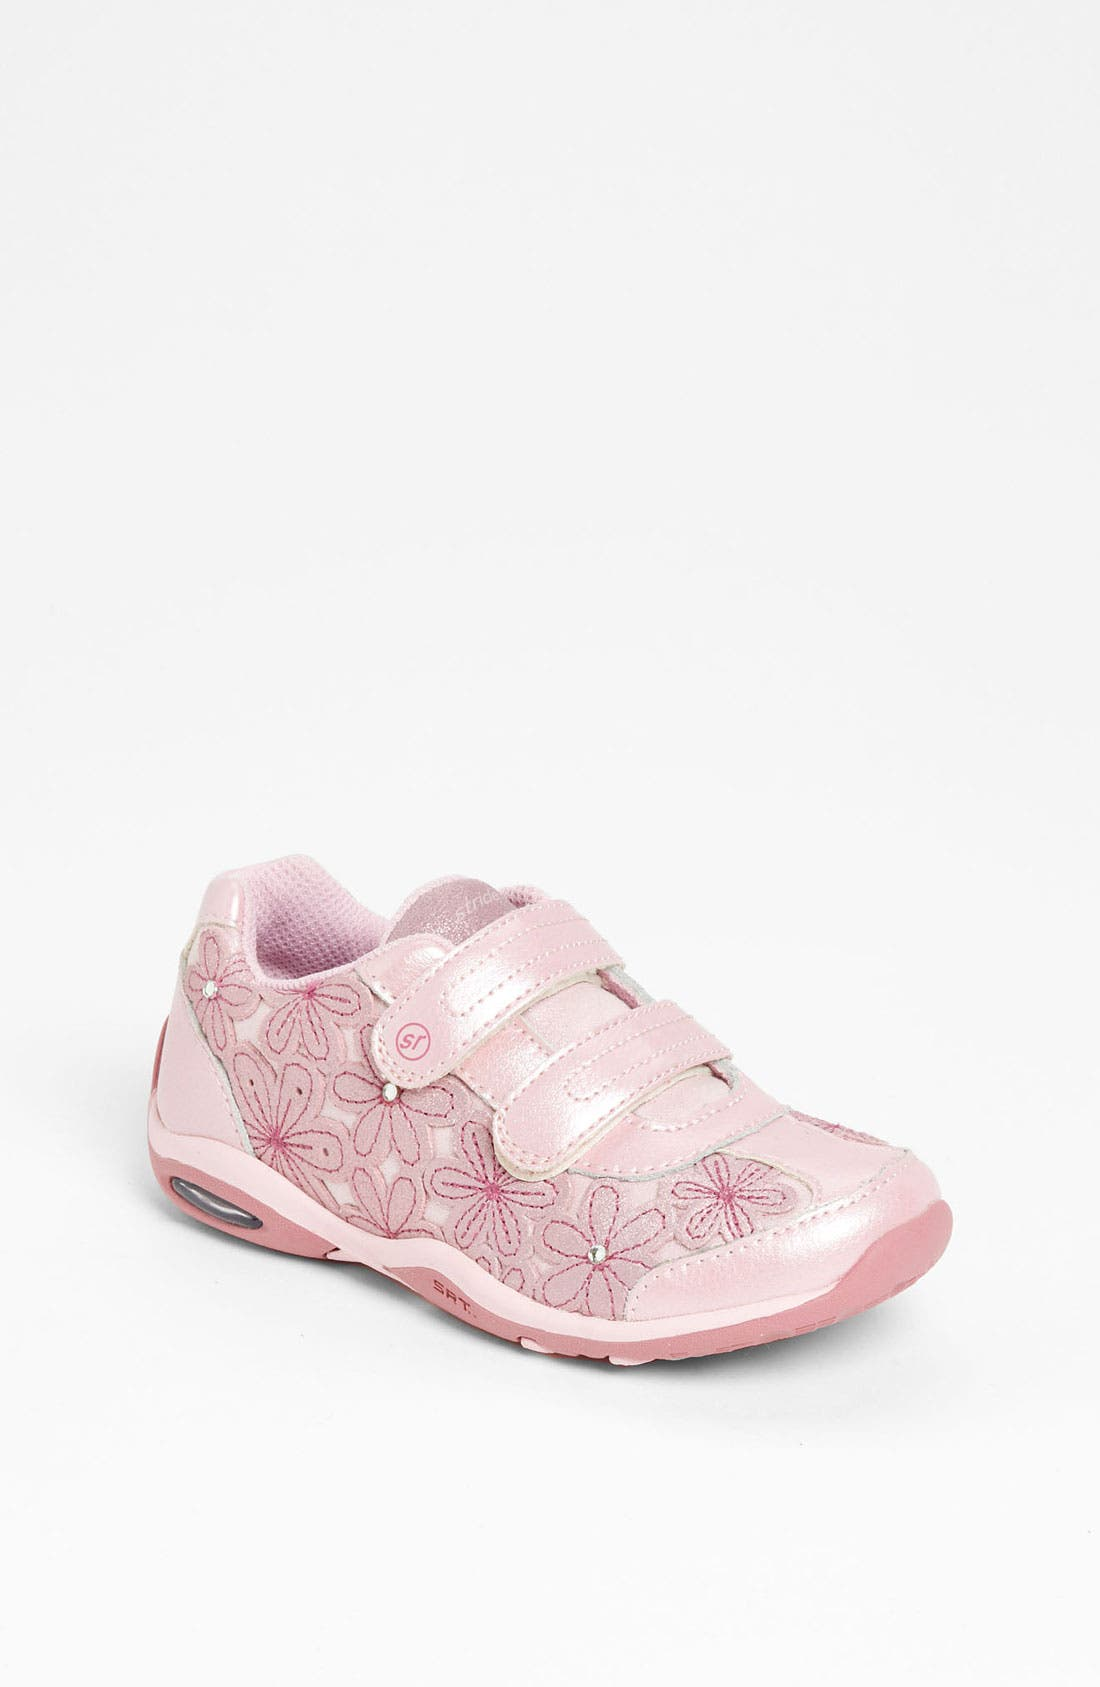 Alternate Image 1 Selected - Stride Rite 'Disney™ - Beatrice' Sneaker (Toddler & Little Kid)